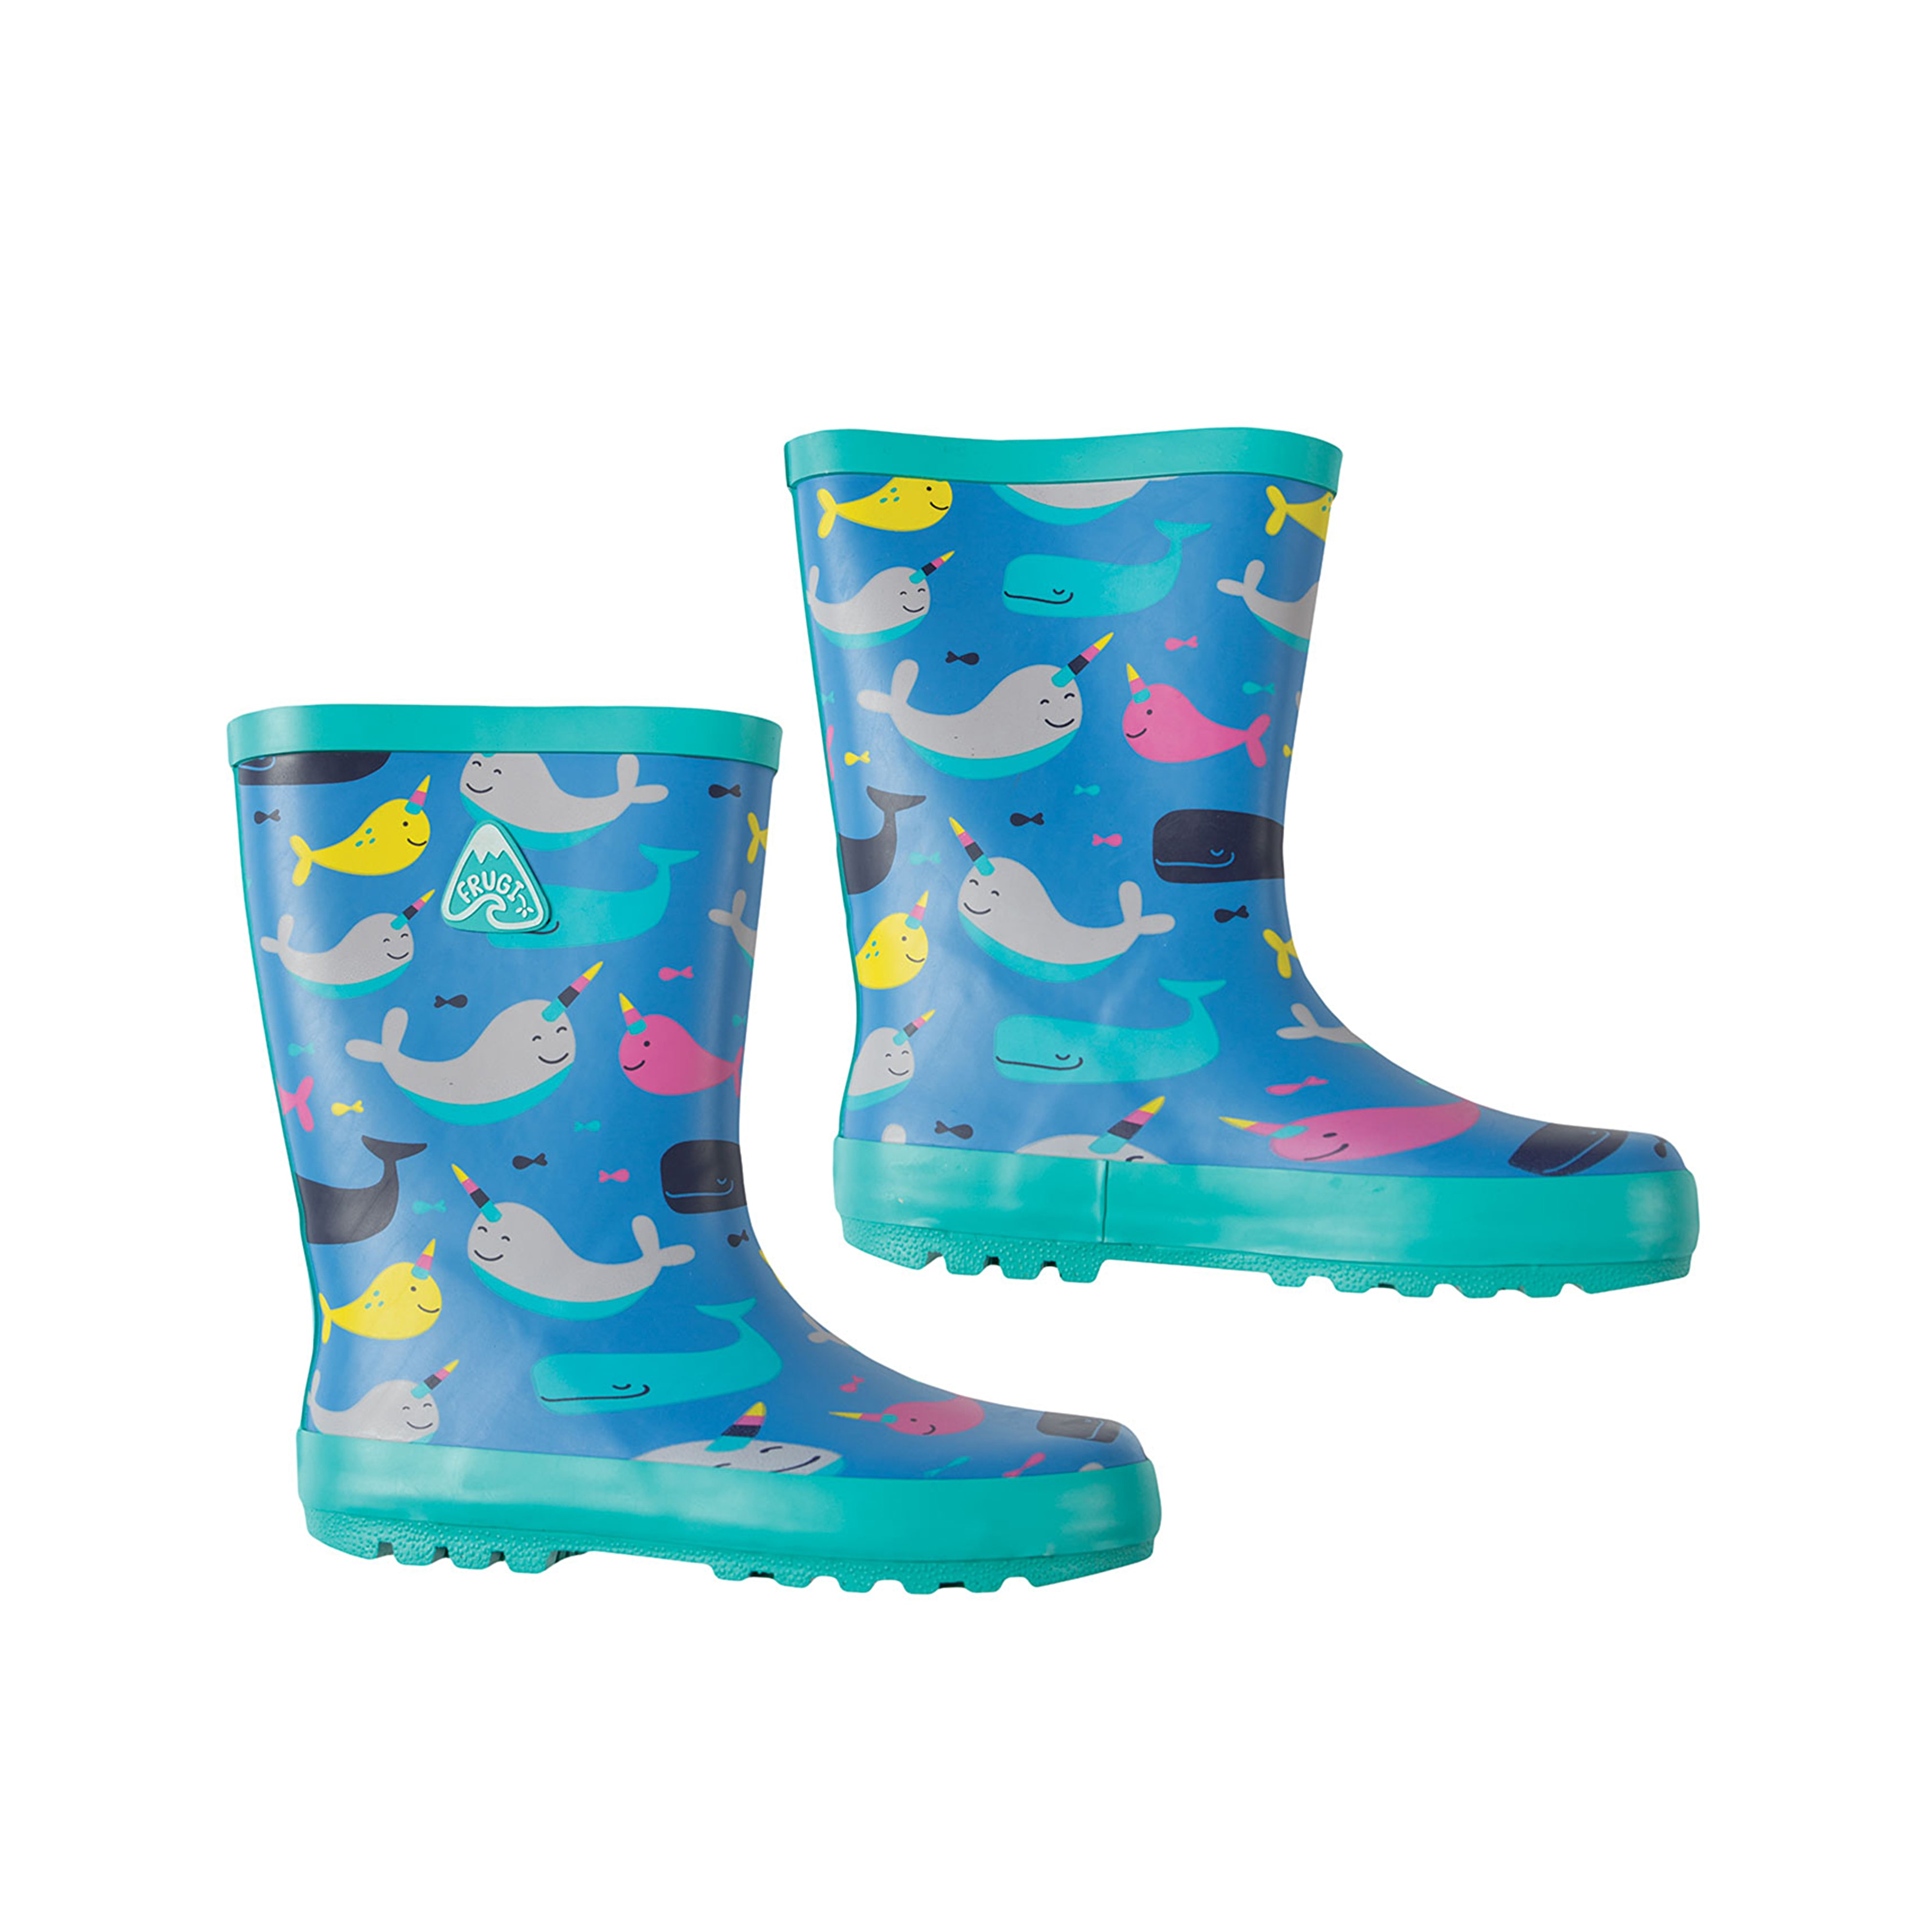 Puddle Buster Wellington Boots